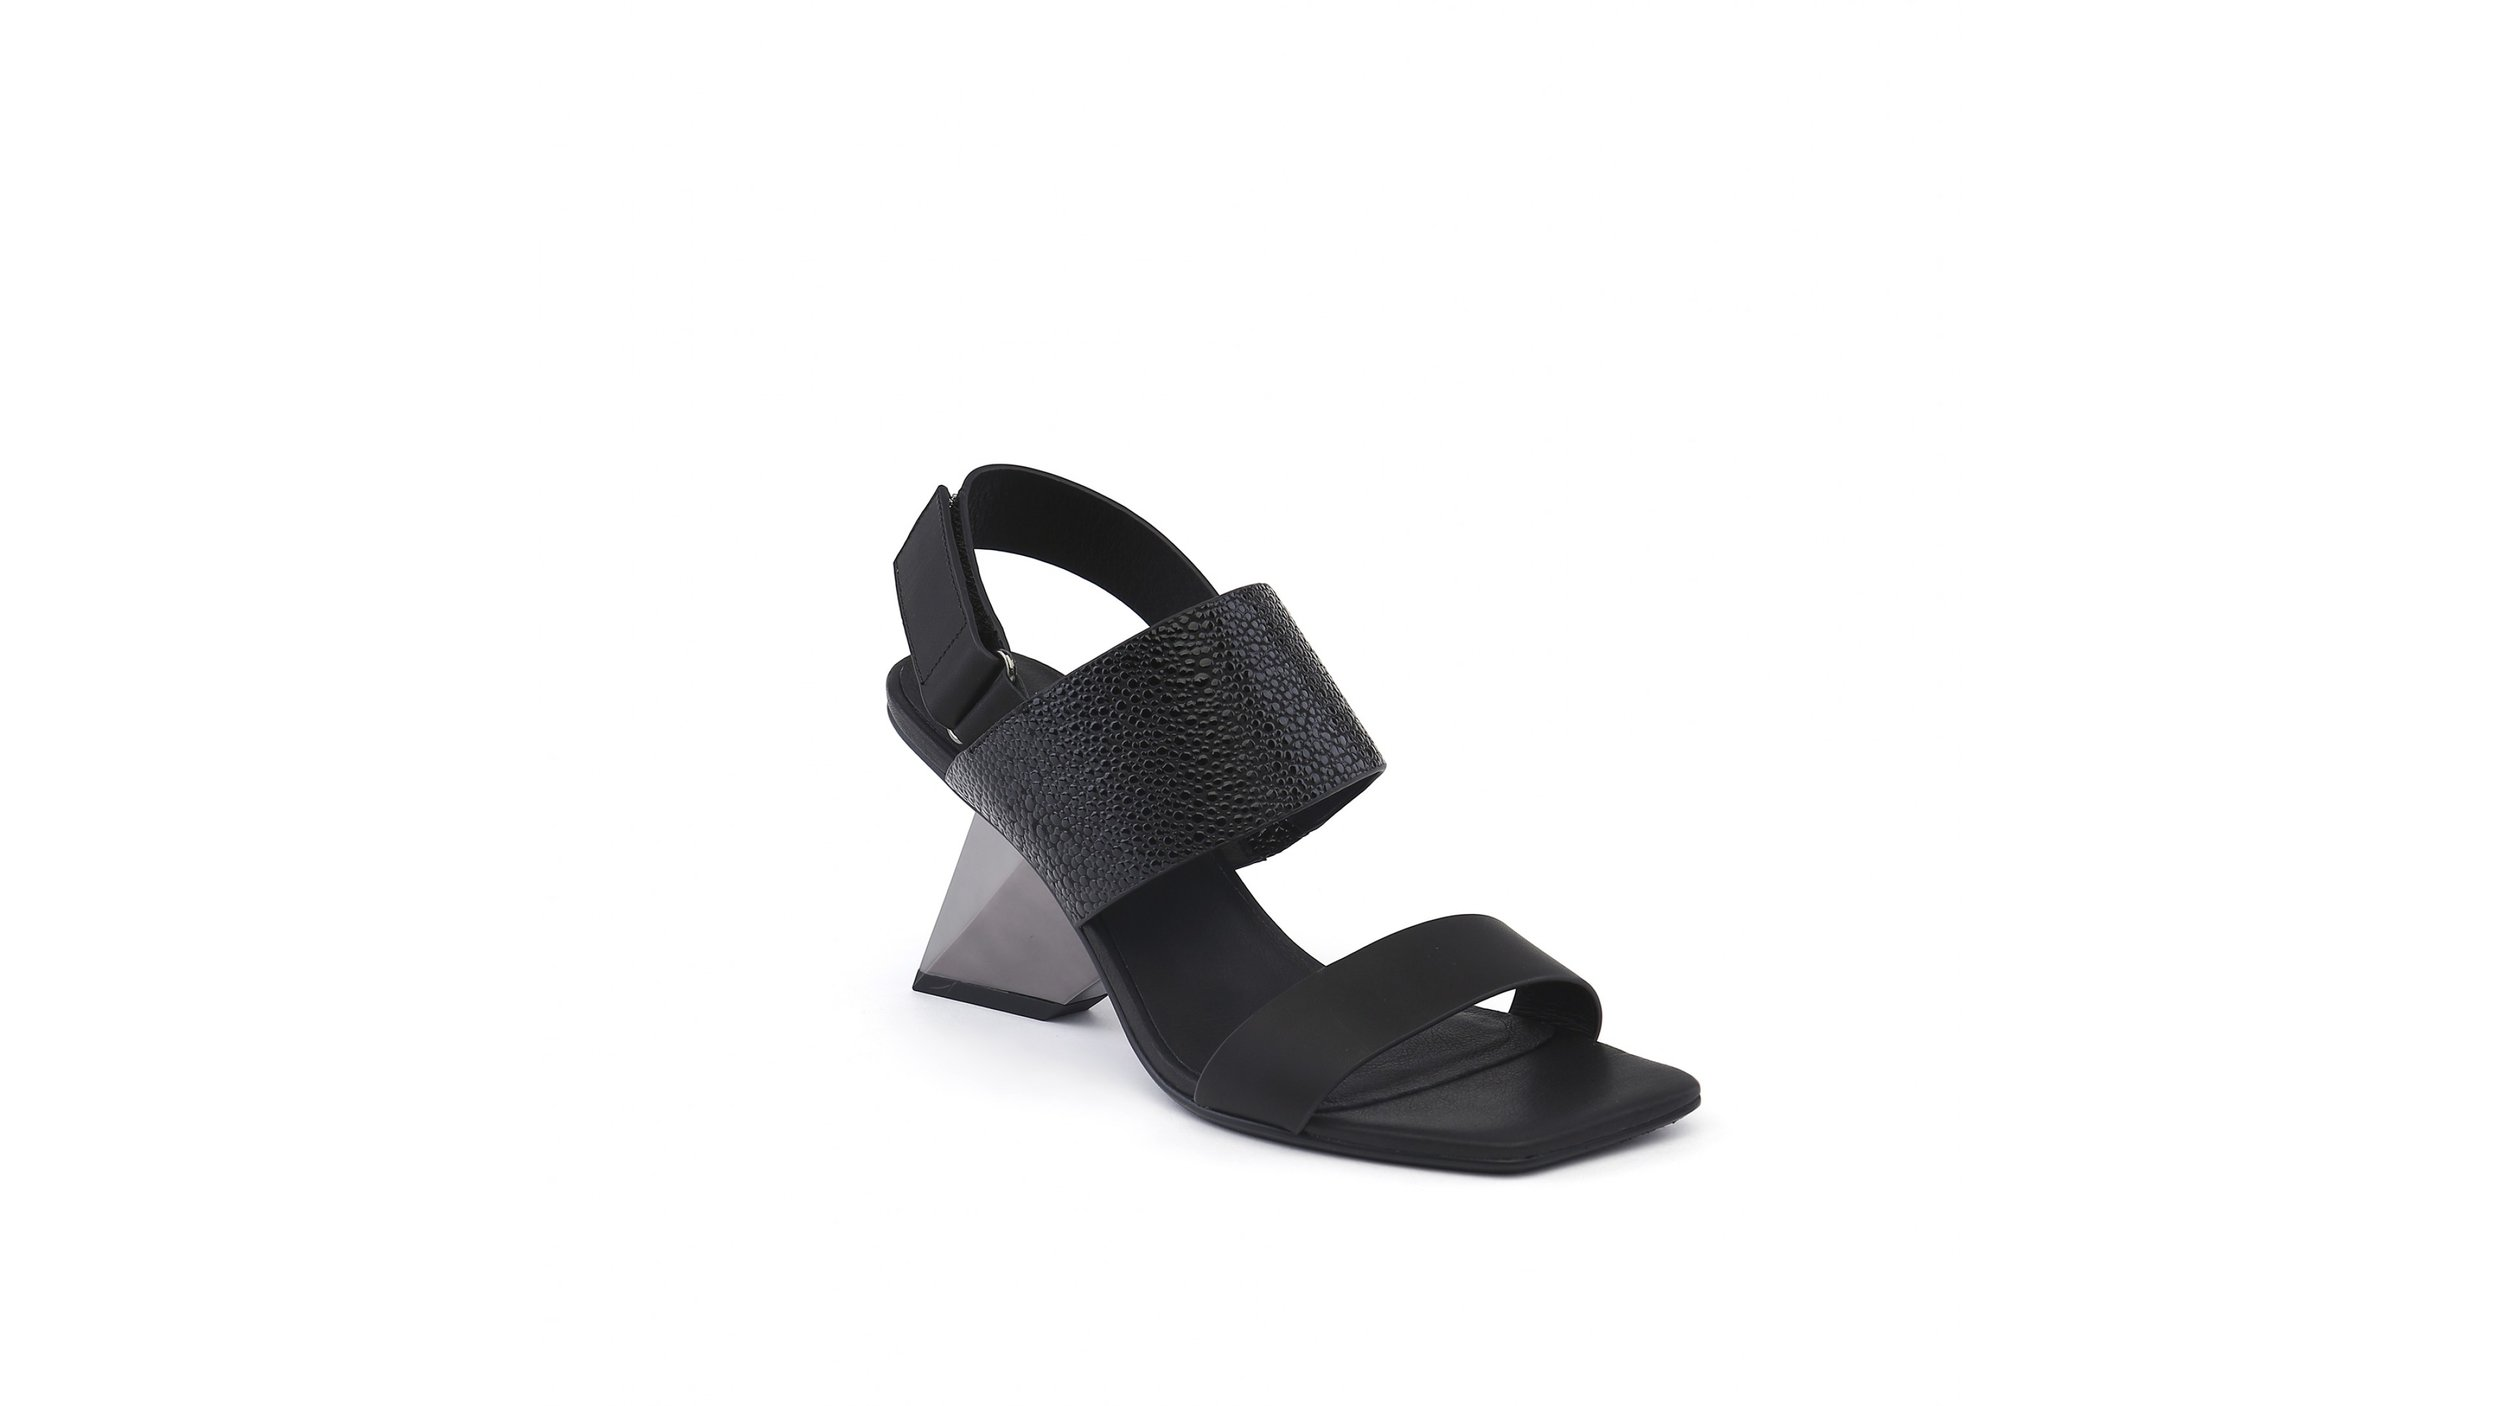 rockit-sandal-black-angle-out.jpg